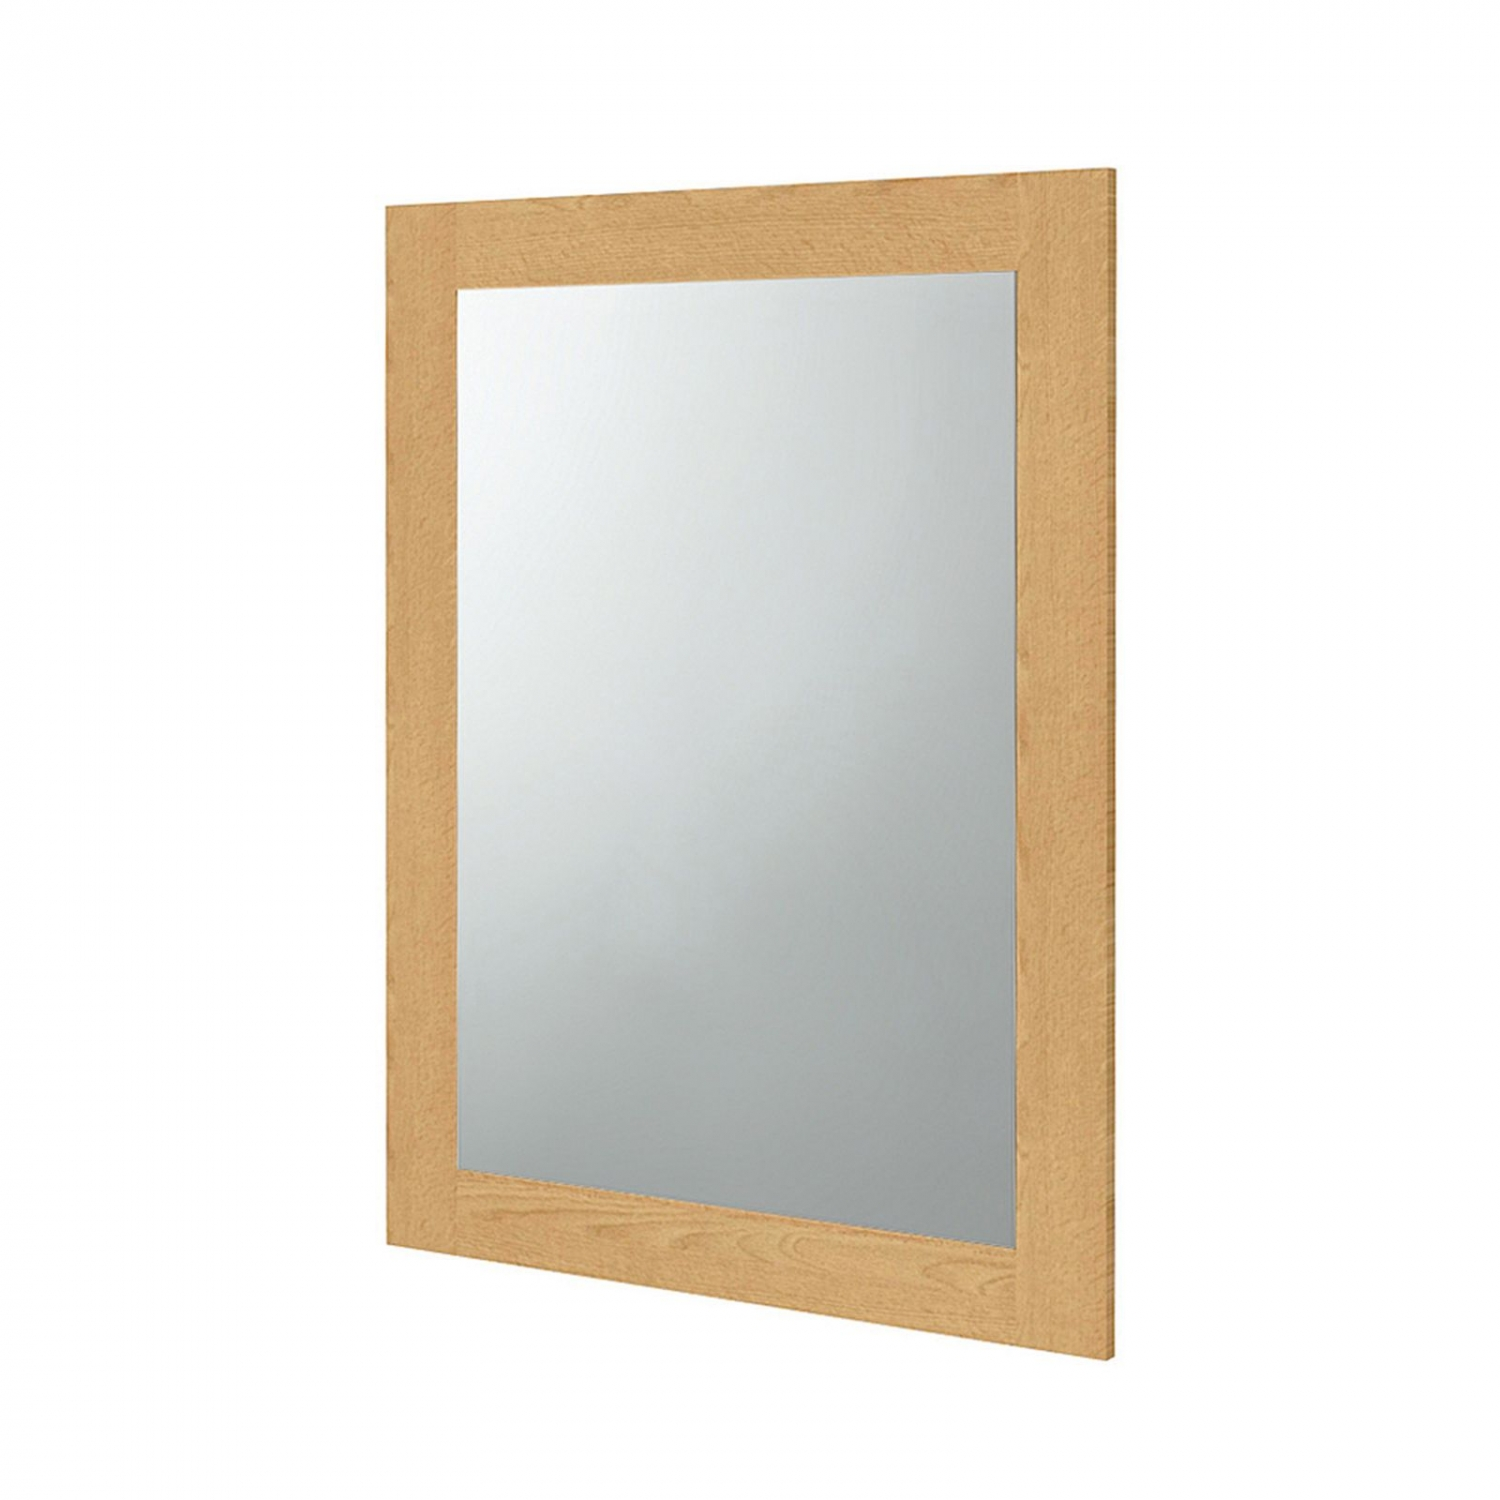 solid oak furniture small living room hallway wall mirror ebay